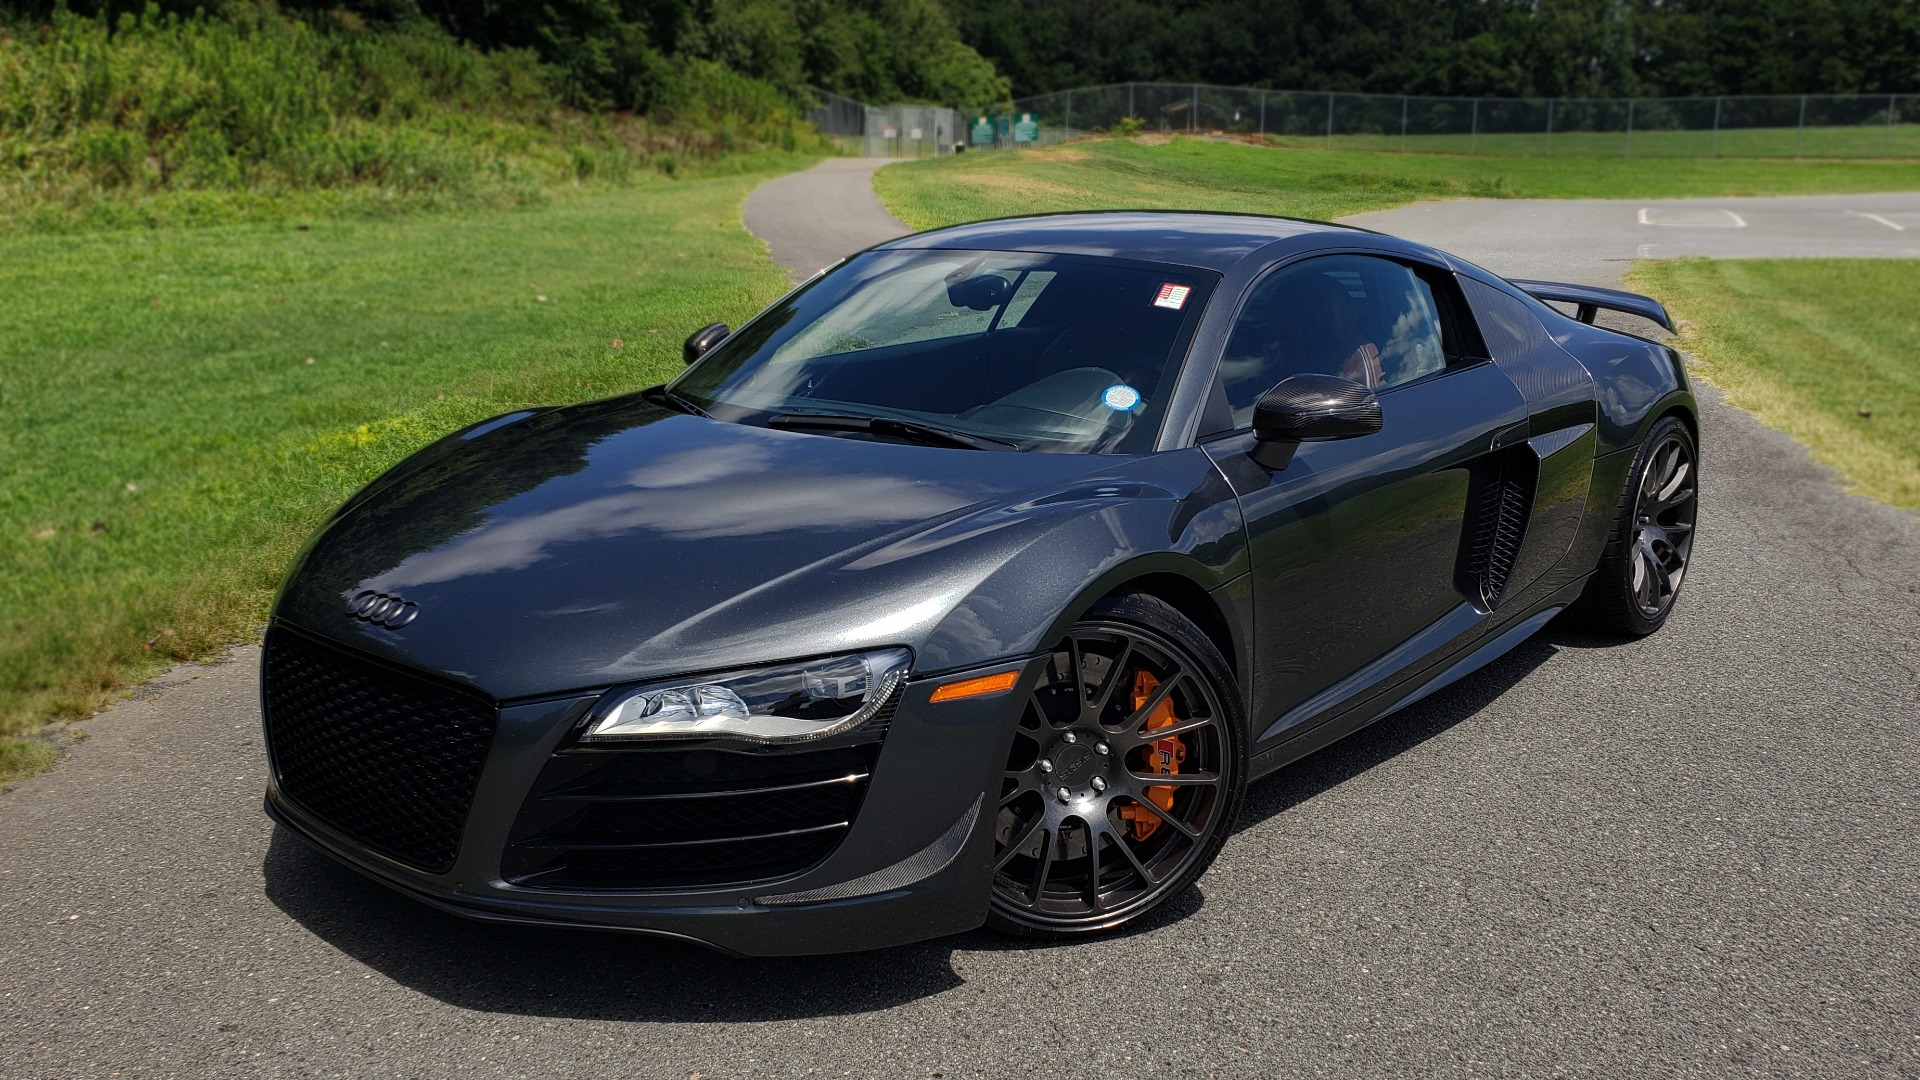 Used 2010 Audi R8 5.2L V10 SUPERCHARGED / AWD / COUPE / CUSTOM TUNED for sale $82,795 at Formula Imports in Charlotte NC 28227 1